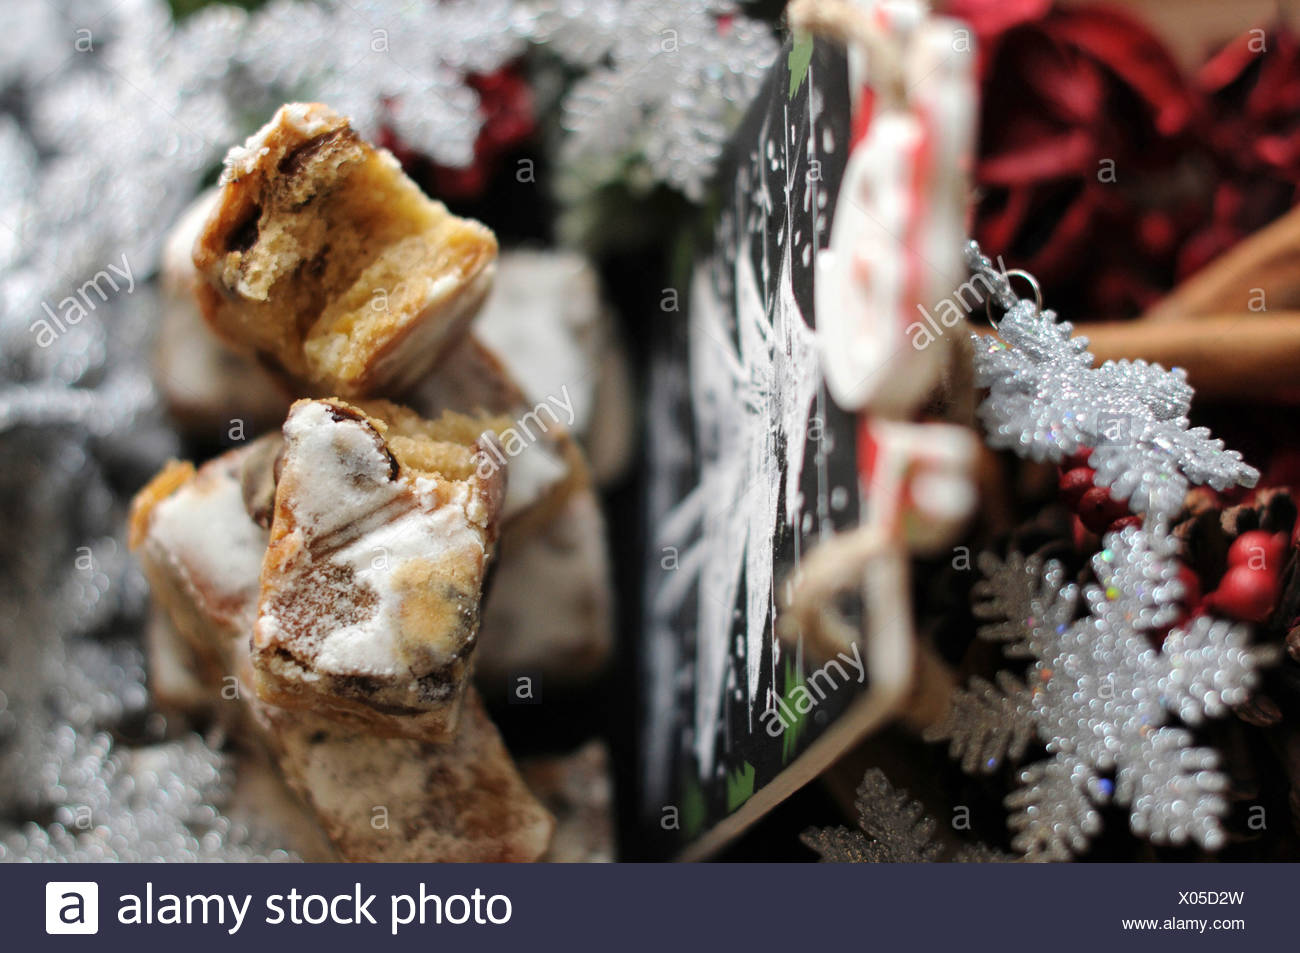 Stollen cake with dried fruits - Stock Image